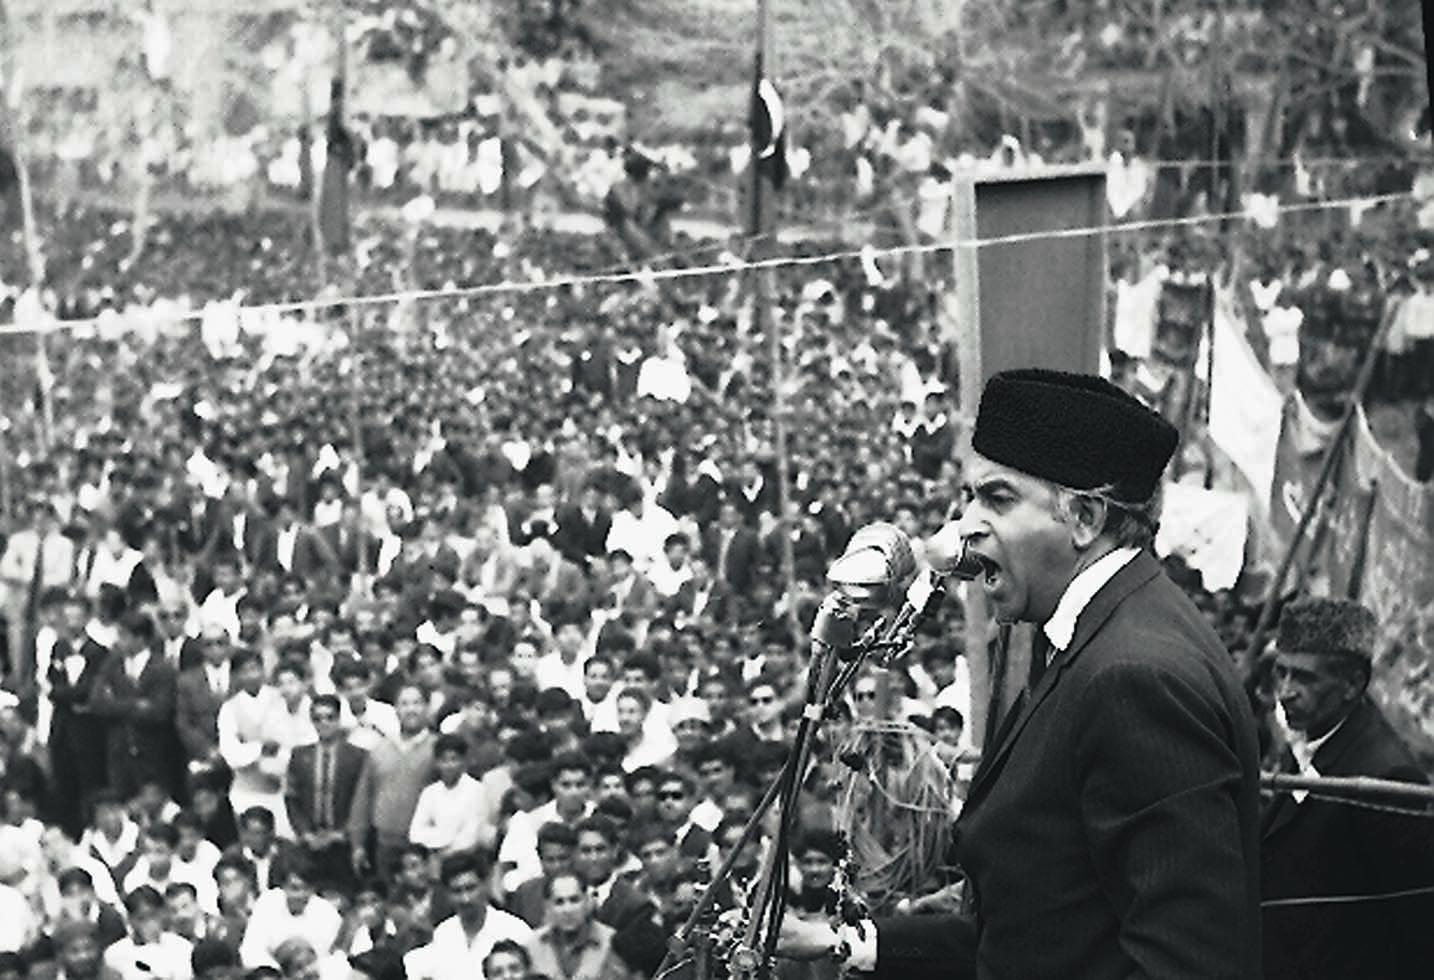 From Mao cap to the Jinnah cap, Zulfikar Ali Bhutto always knew what he was doing at his public meetings that were almost always mammoth. | Photo: Dawn / White Star Archives